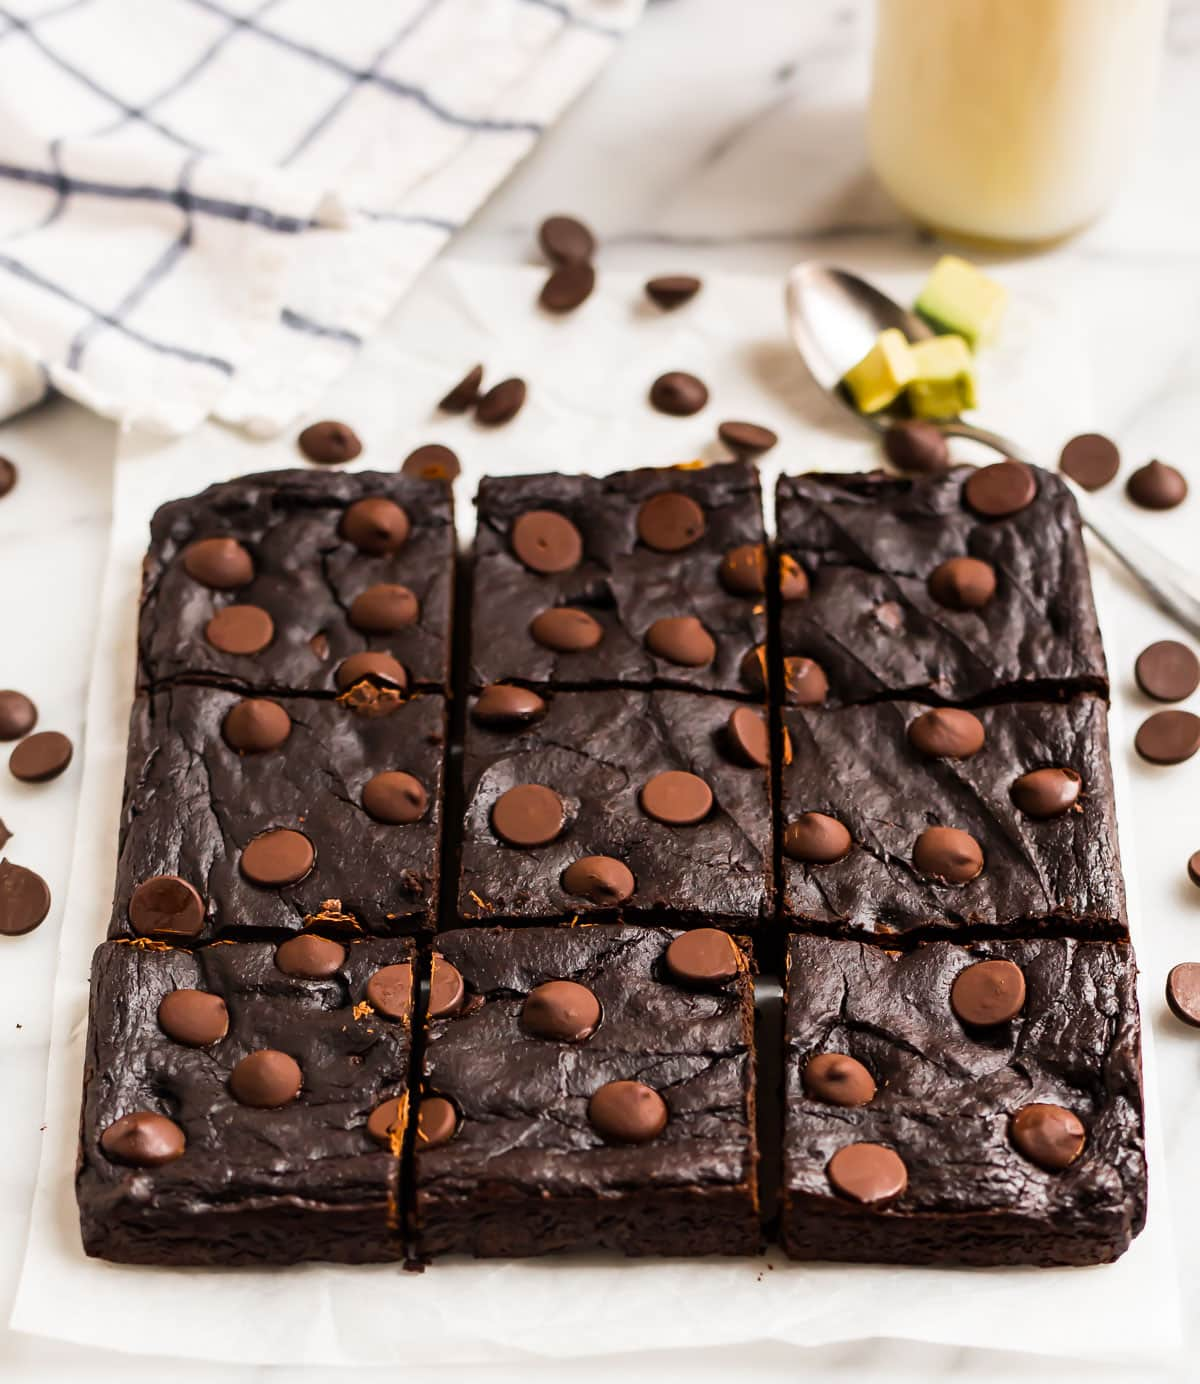 Healthy Avocado Brownies. Gluten free, grain free, and packed with chocolate!